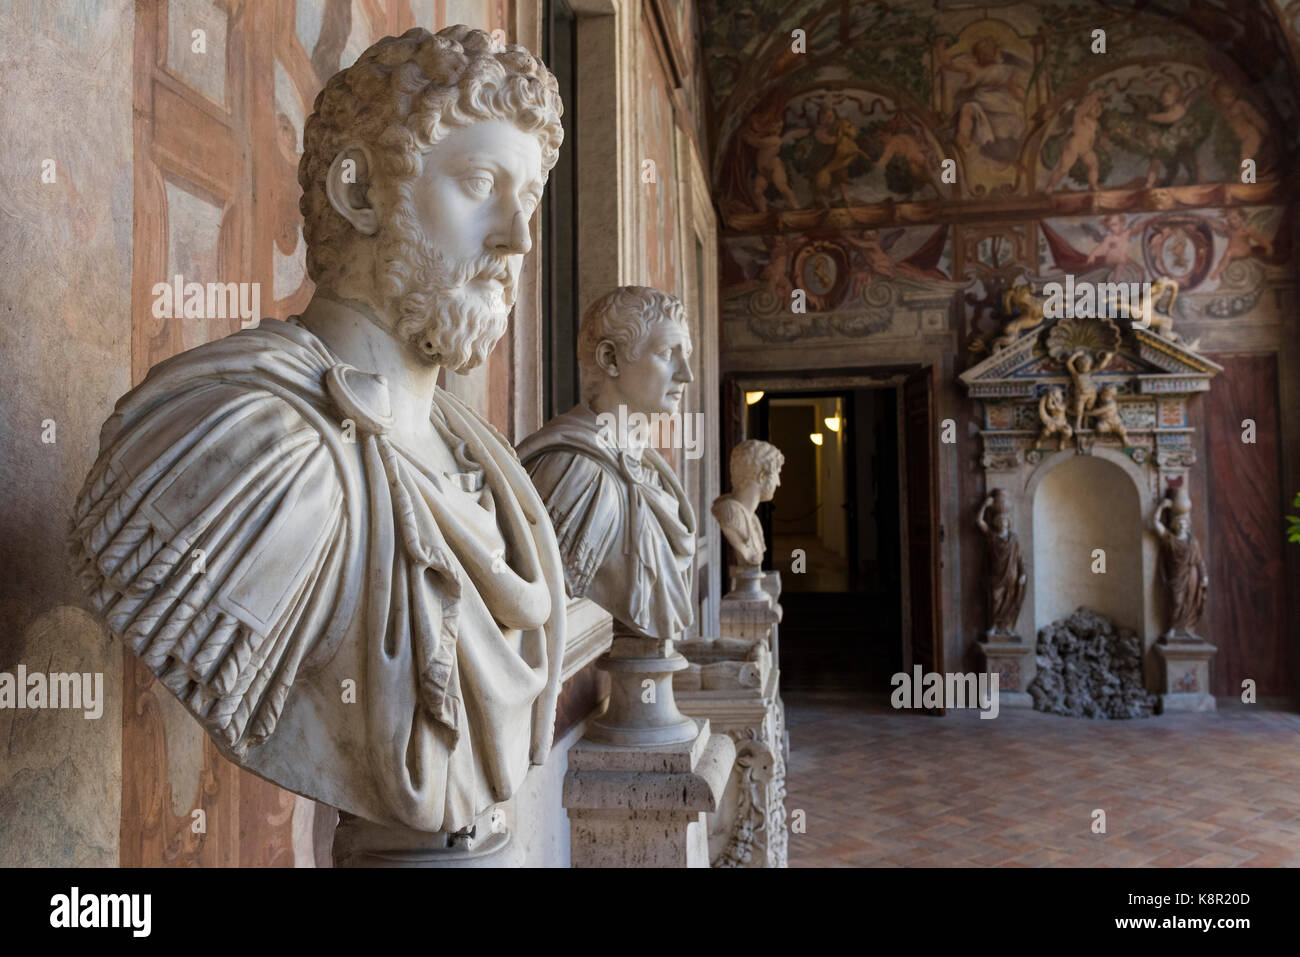 Rome. Italy. Busts of Roman Emperors, (foreground) Emperor Marcus Aurelius, line the loggia of Palazzo Altemps. - Stock Image